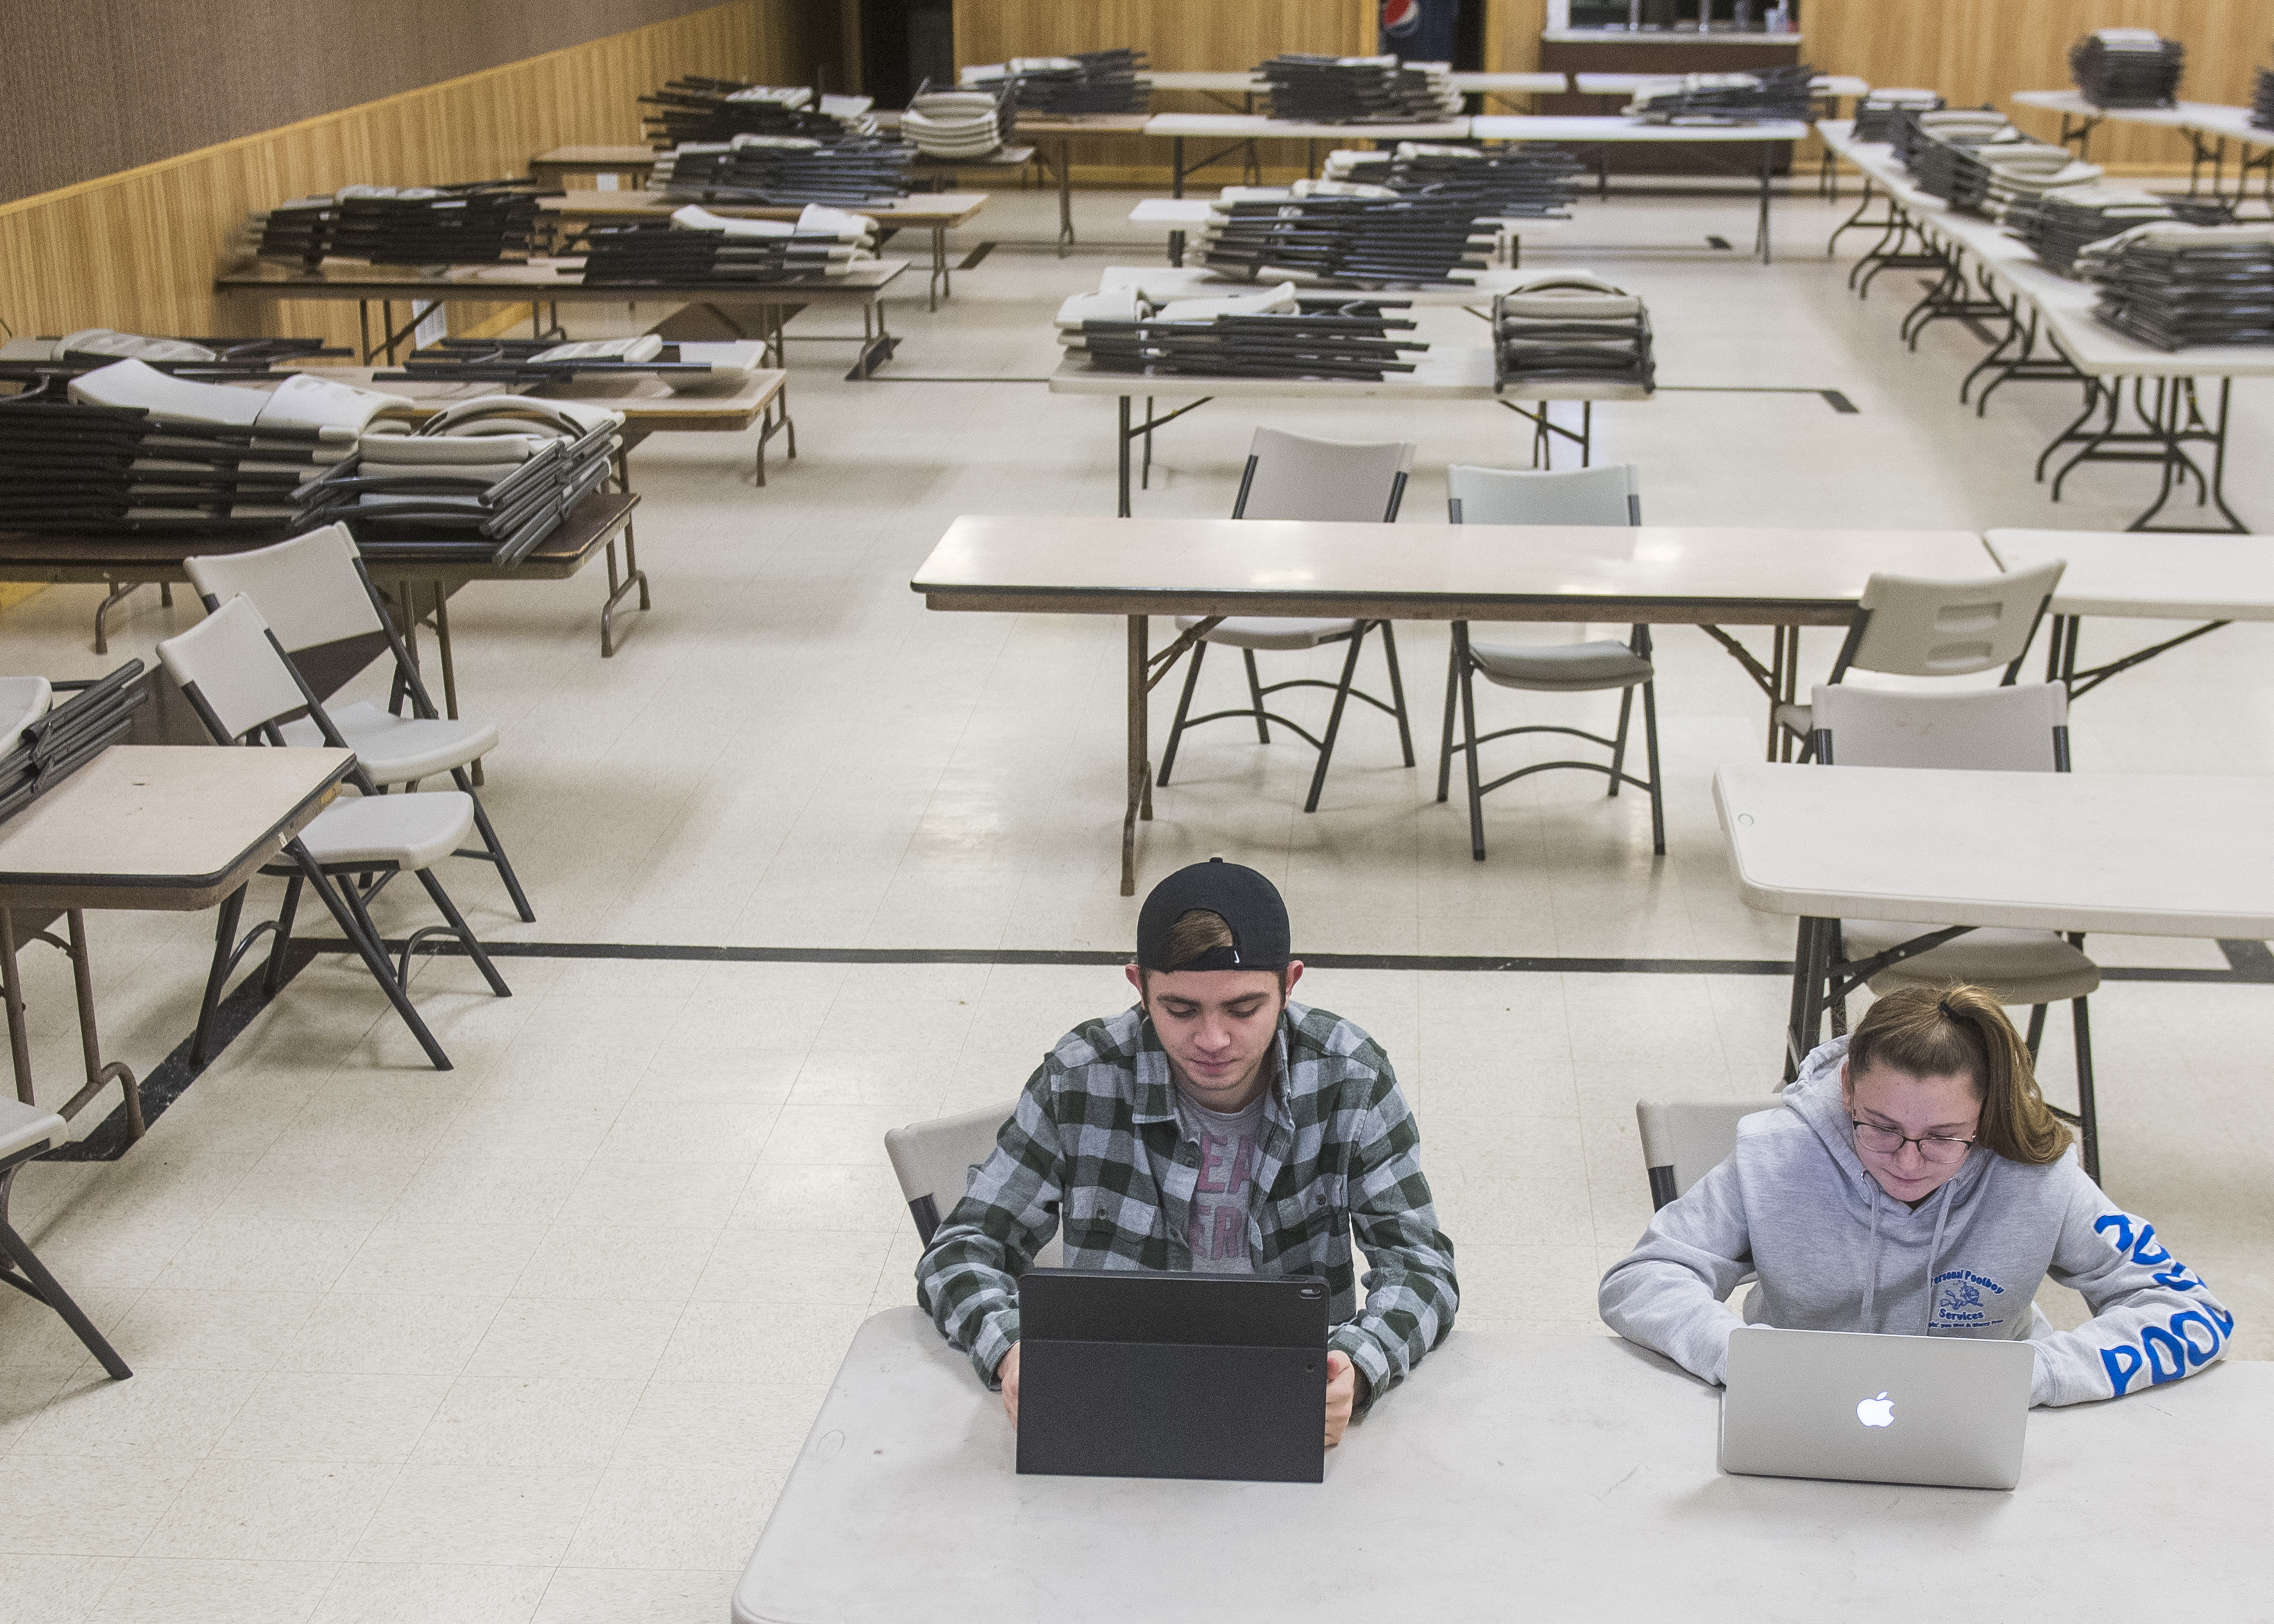 Endless buffering: Local schools try to solve students' internet access issues on their own